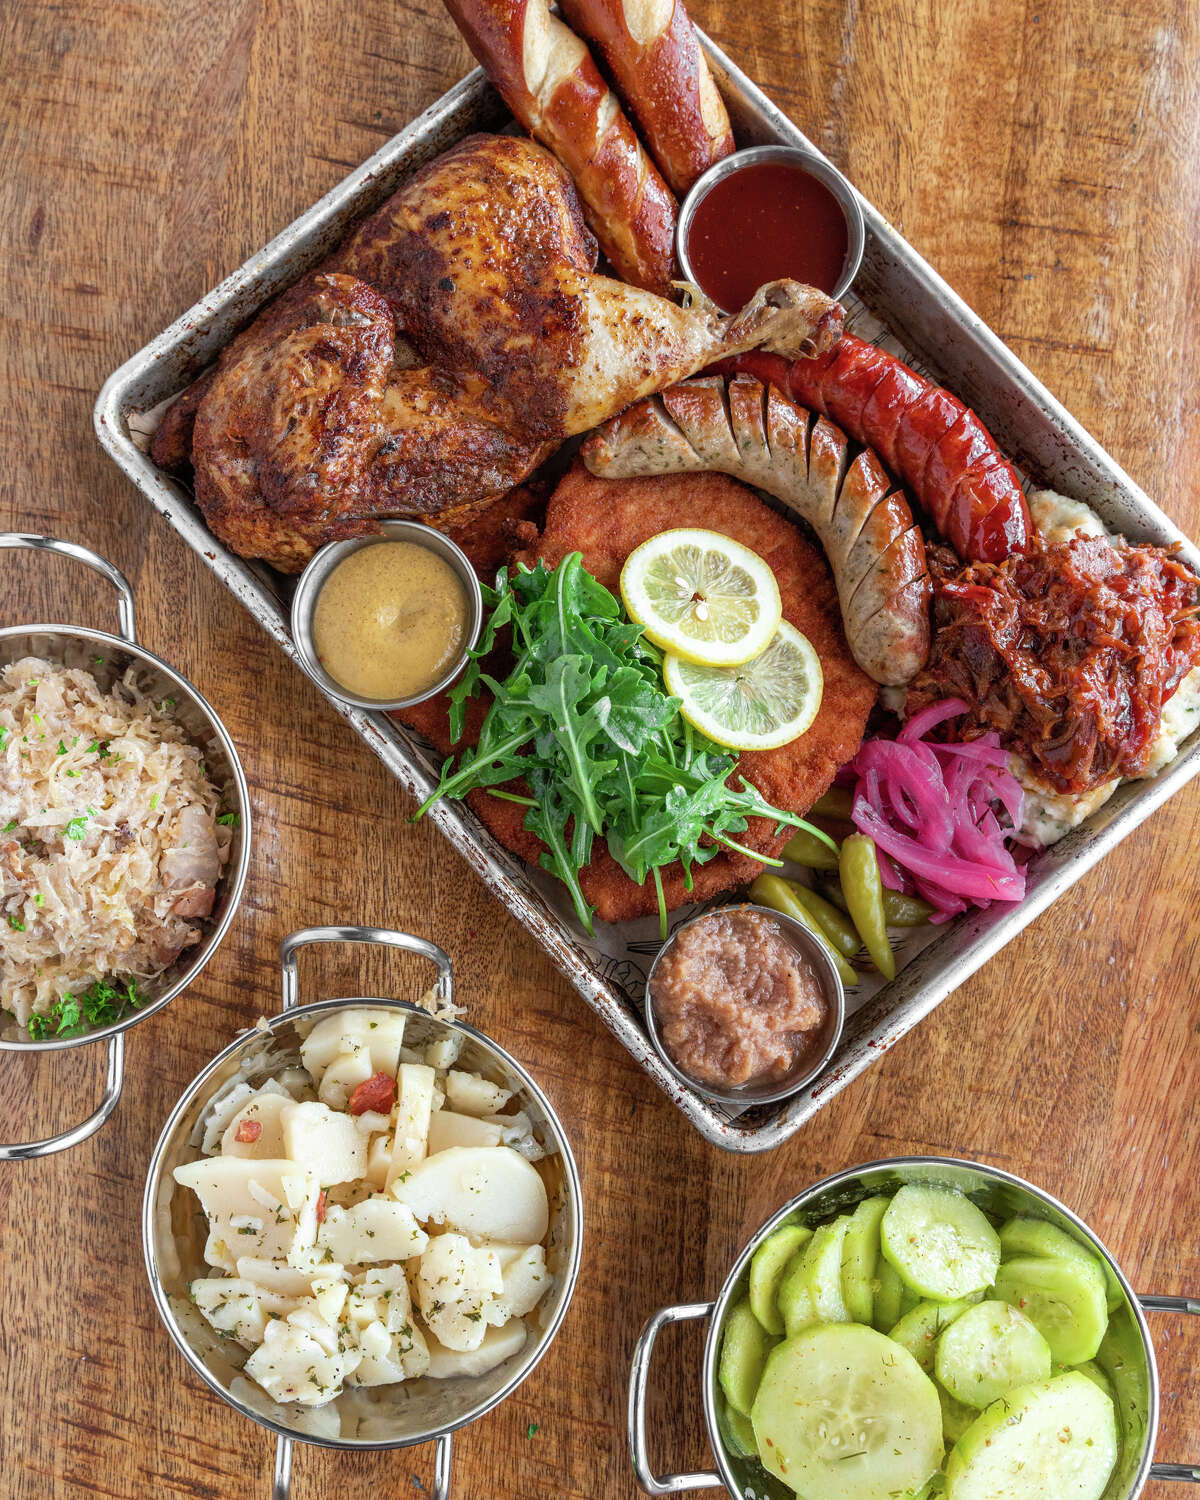 King's Biergarten in Pearland, closed since mid-March, is reopening on July 14. The menu has been revamped with new items in addition to the restaurant's lineup for German-Austrian fare.